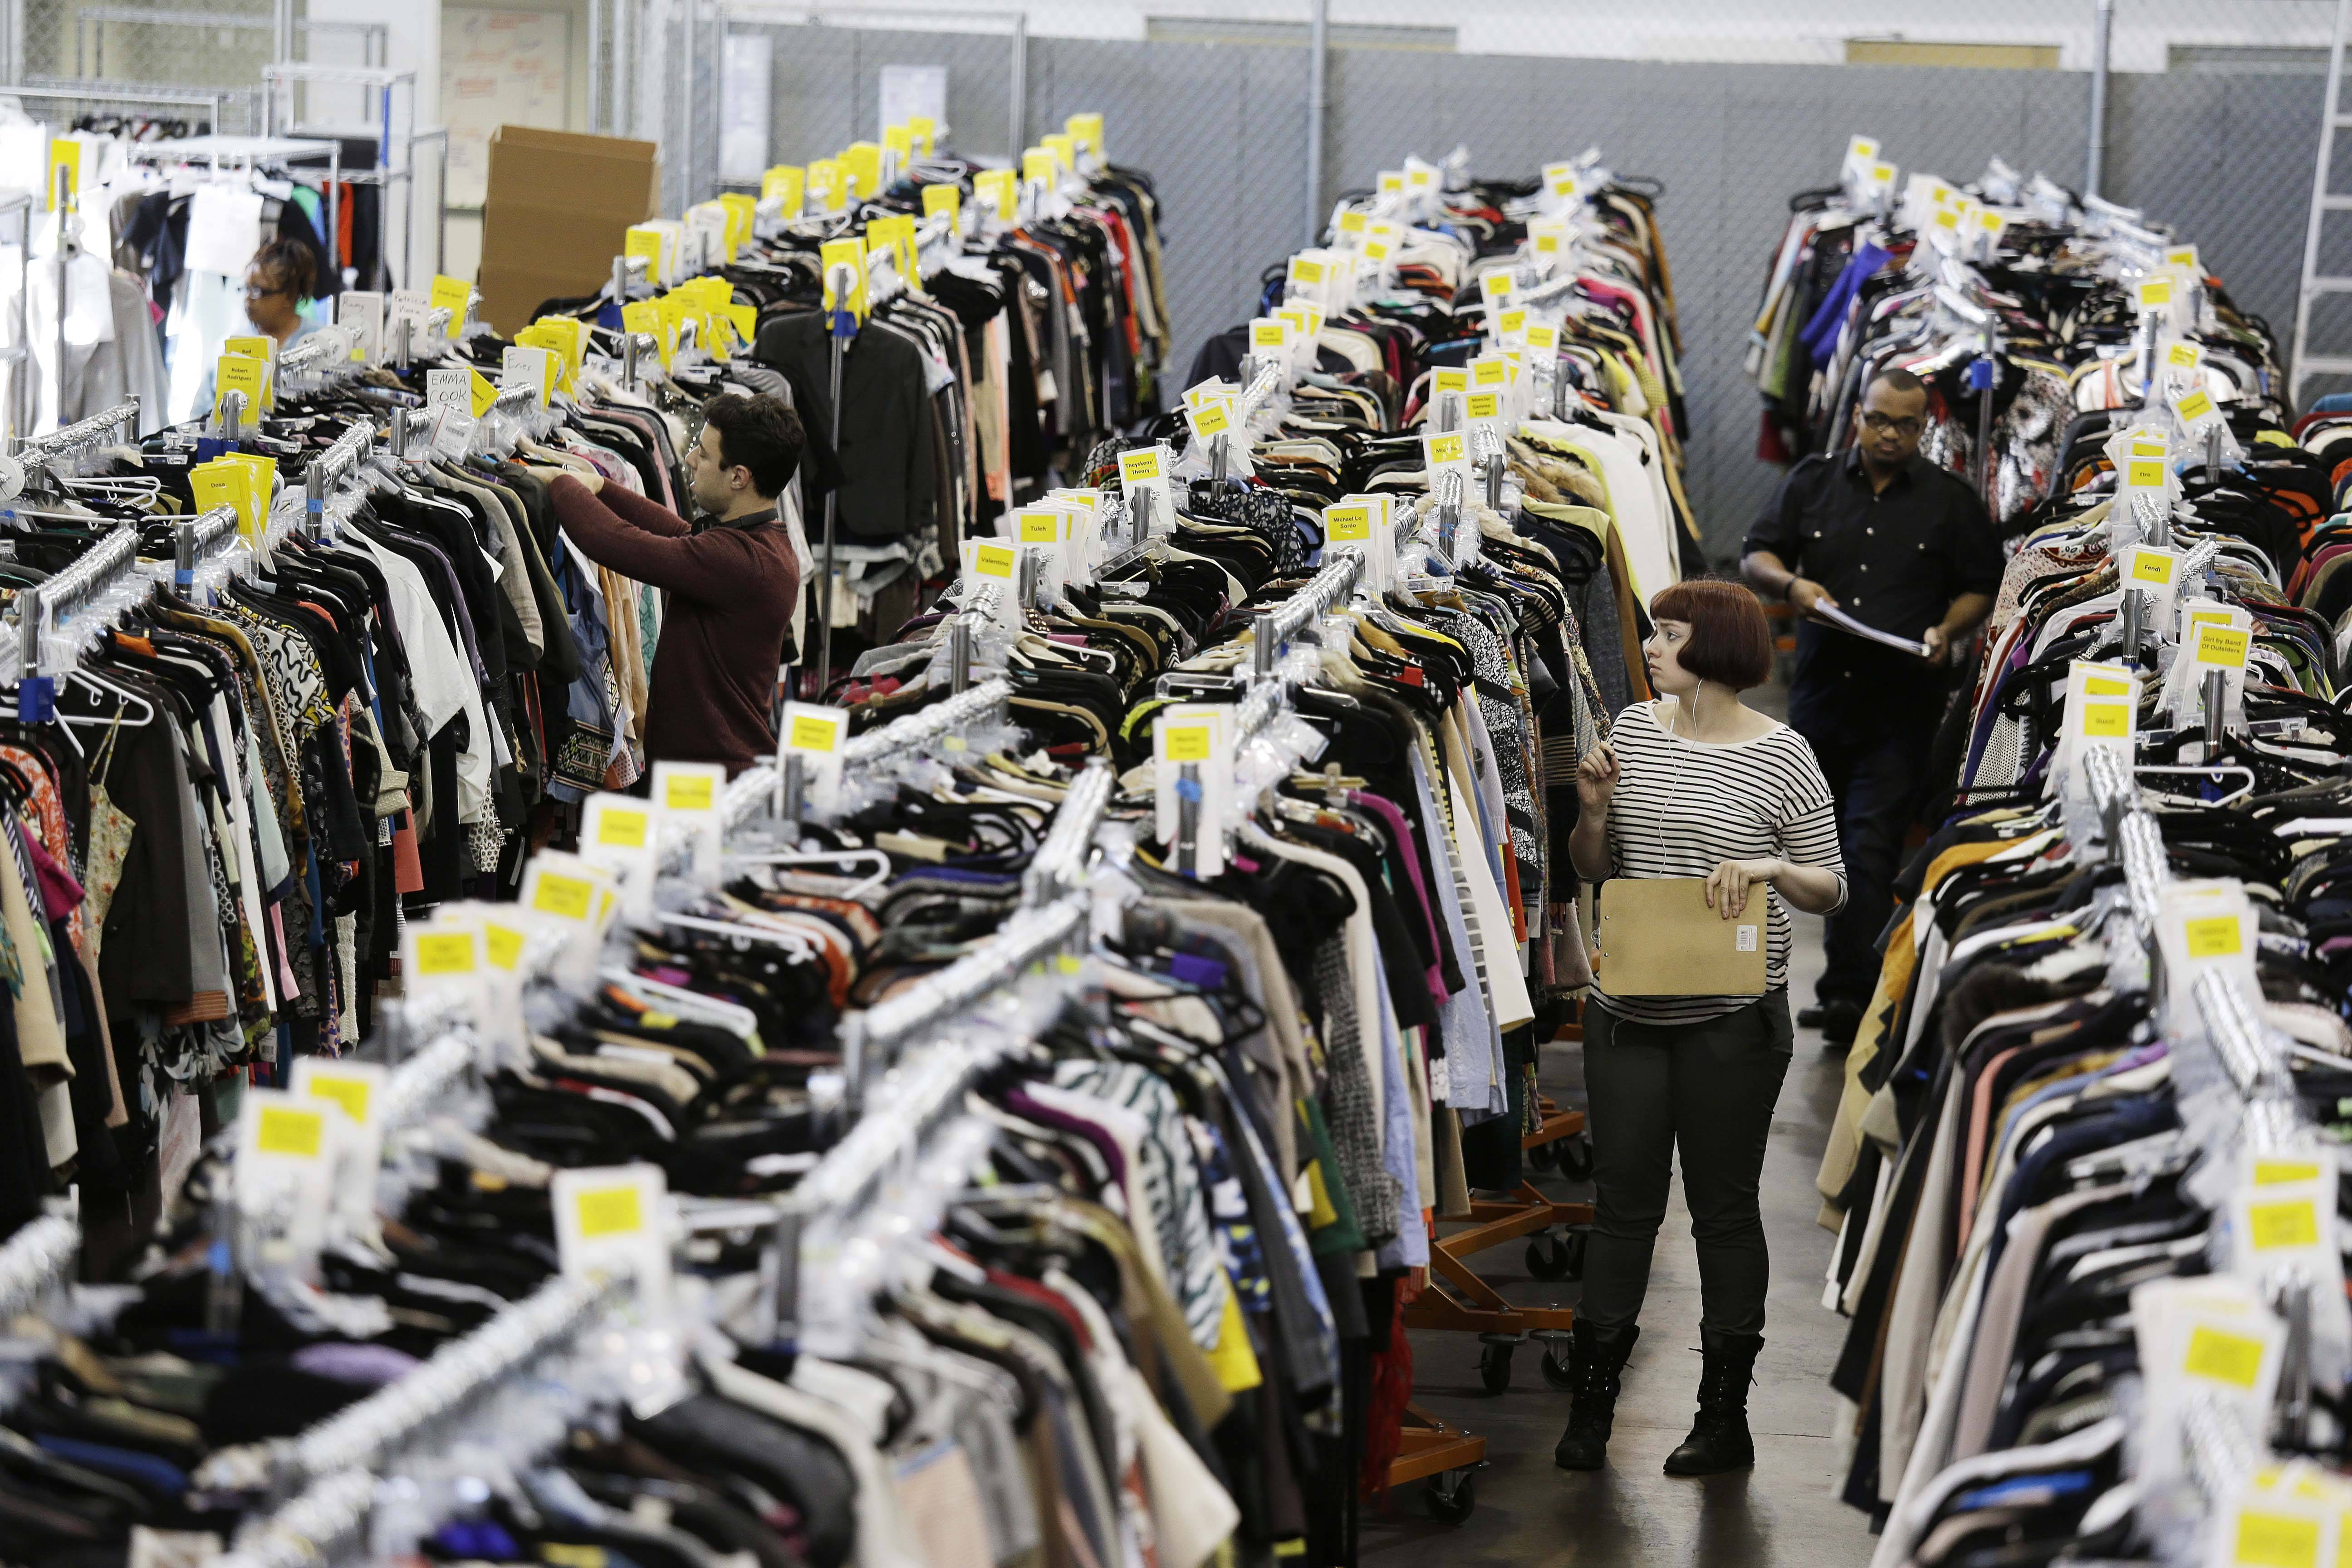 Workers locate and pull items for shipping from racks of designer clothing at the headquarters of The RealReal in San Francisco.